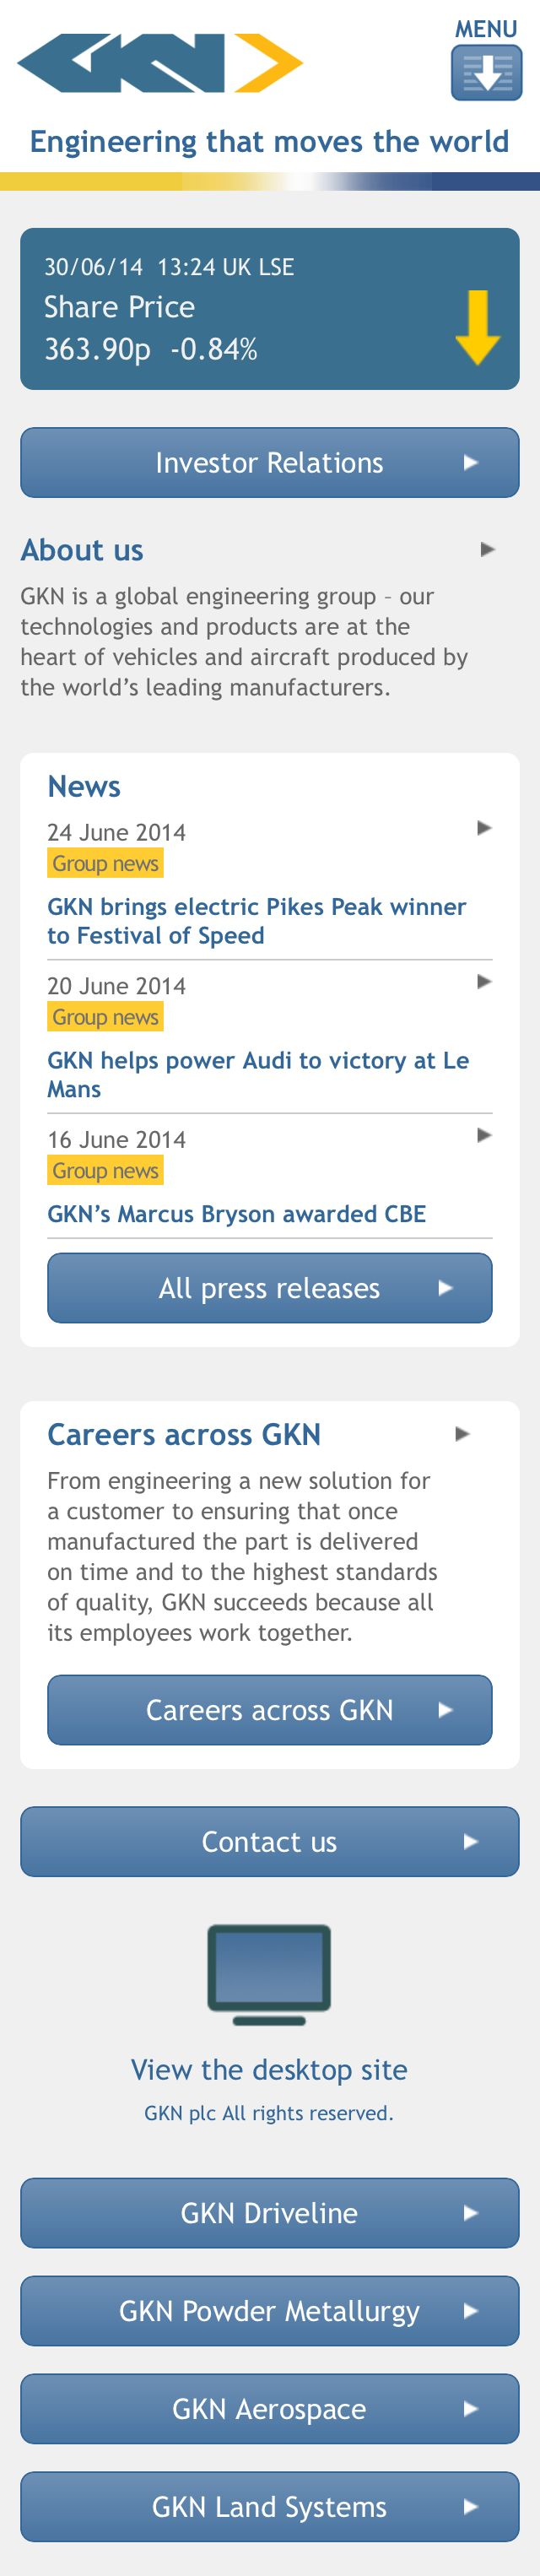 GKN's mobile responsive candidate portal